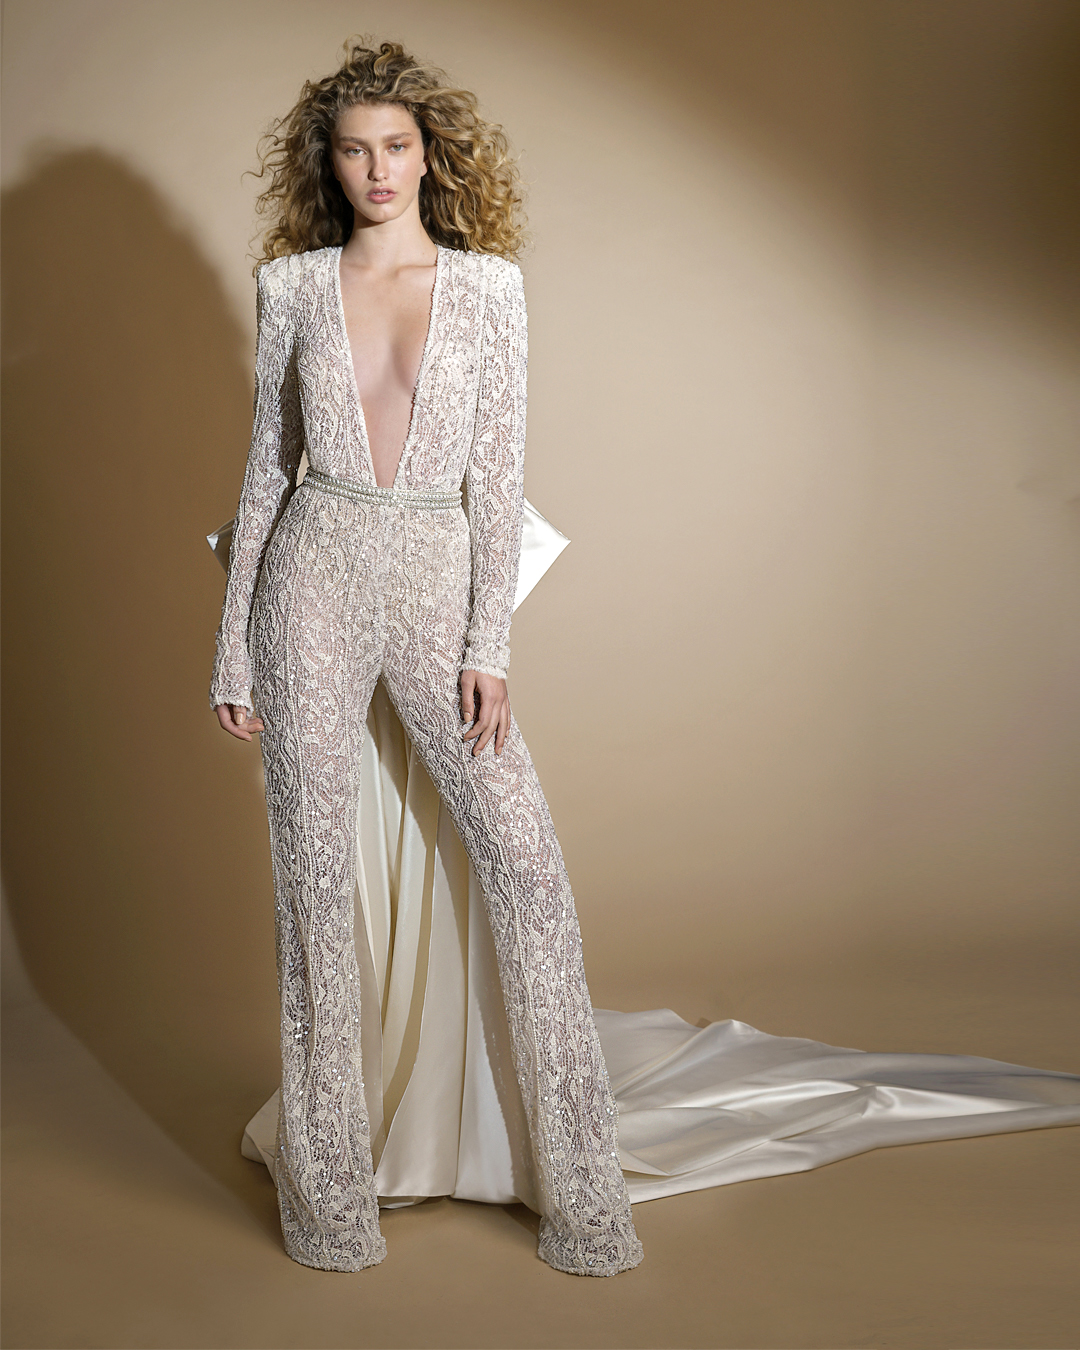 galia lahav gala wedding dress spring 2019 lace pant suit satin bow train